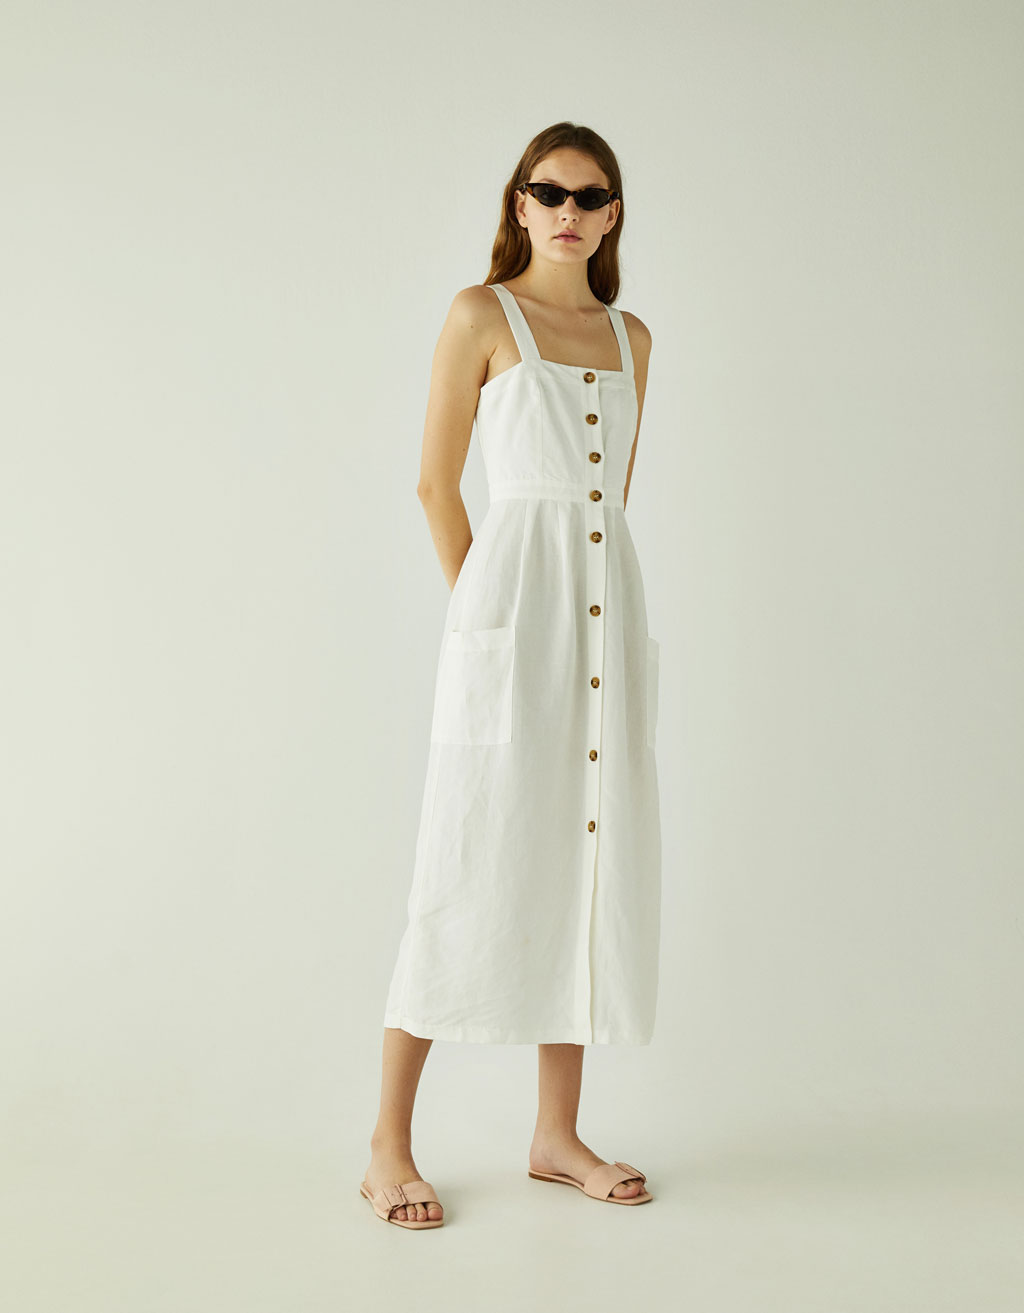 Linen midi dress with pockets